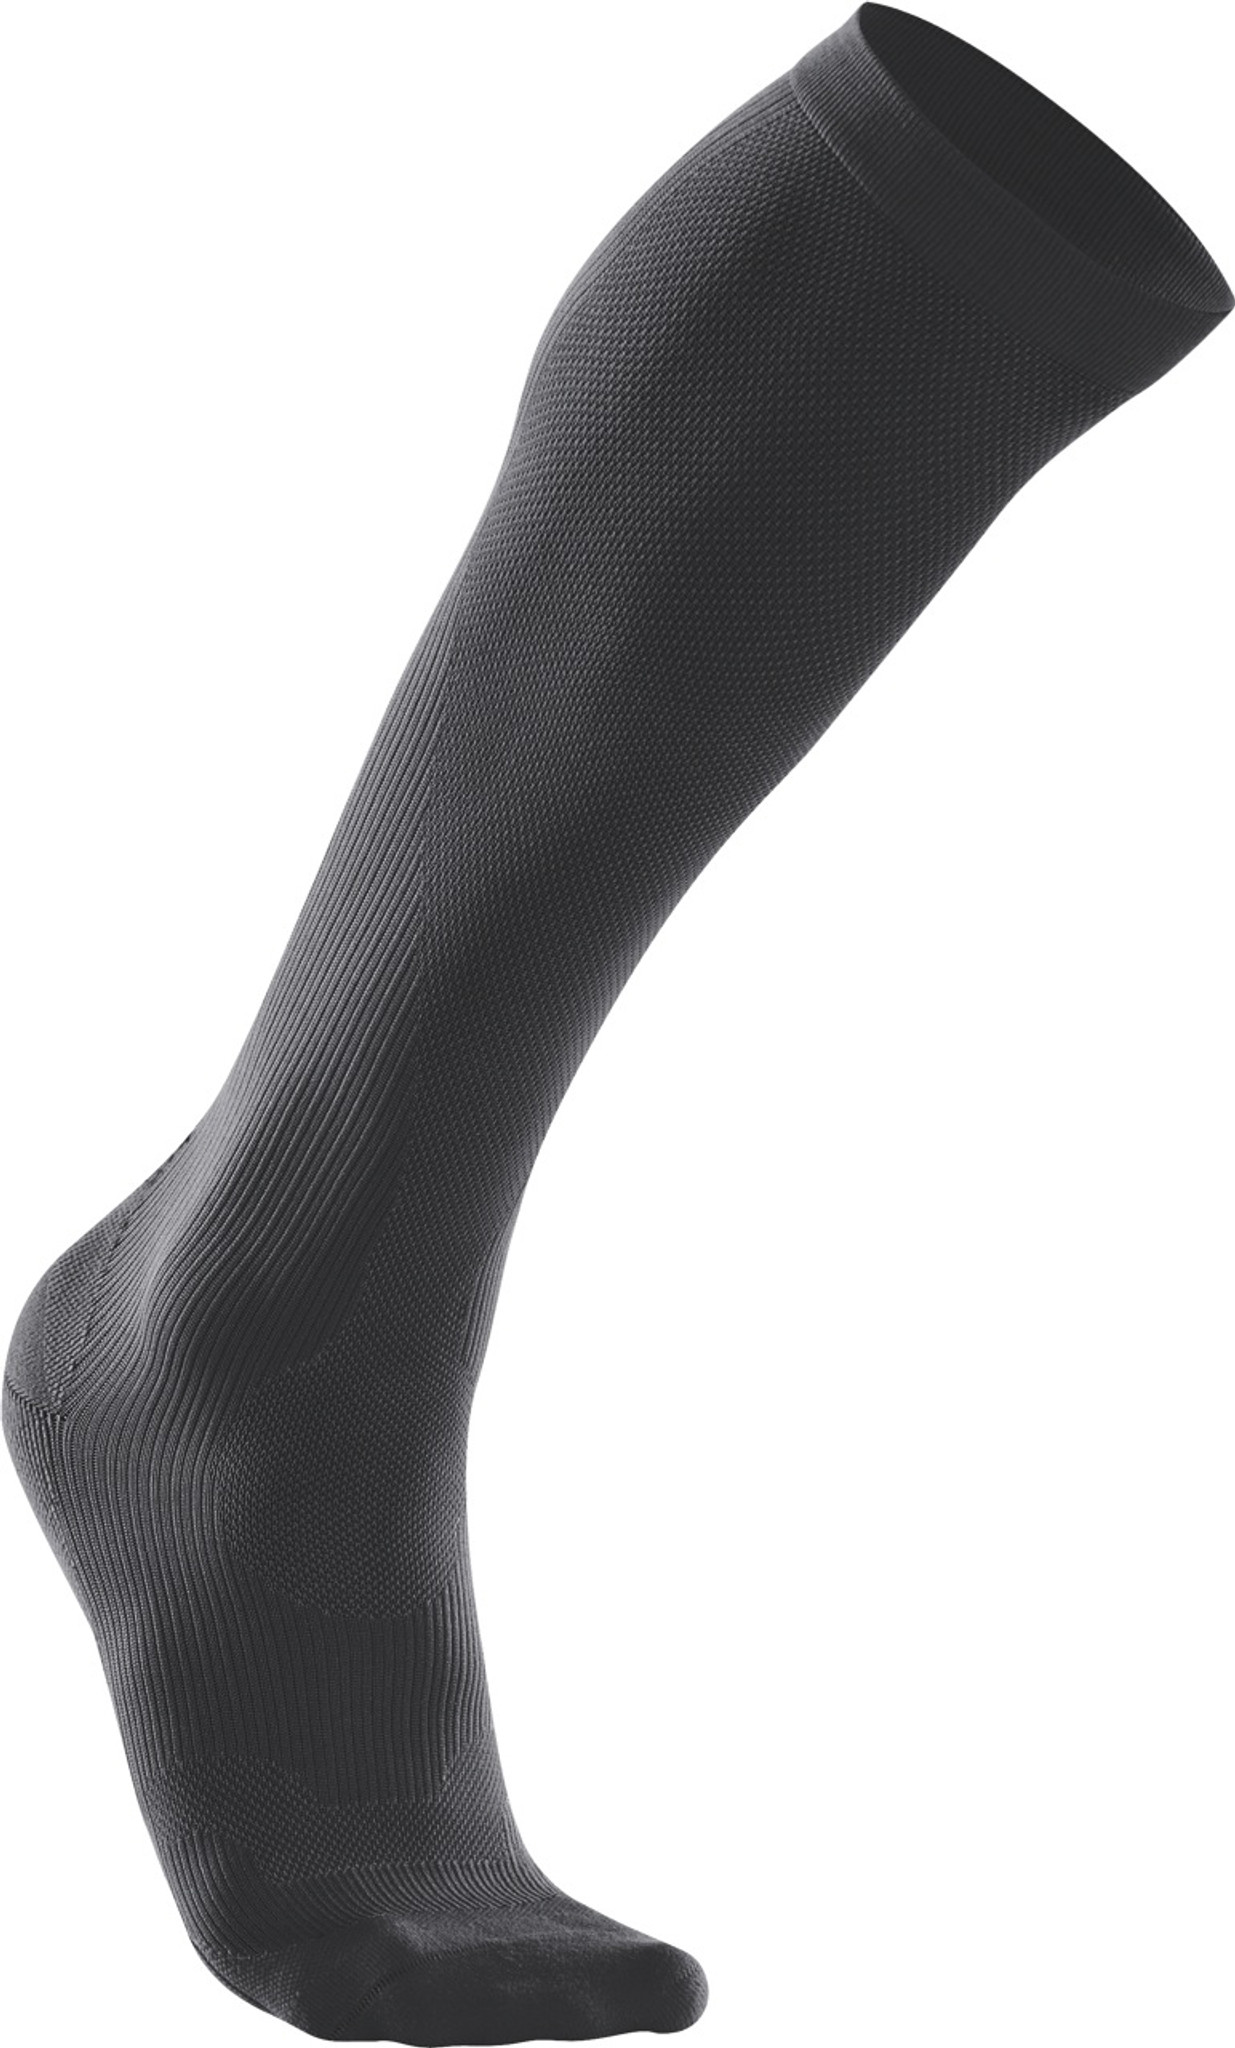 Sporting Goods 2xu Compression Mens Running Socks Black